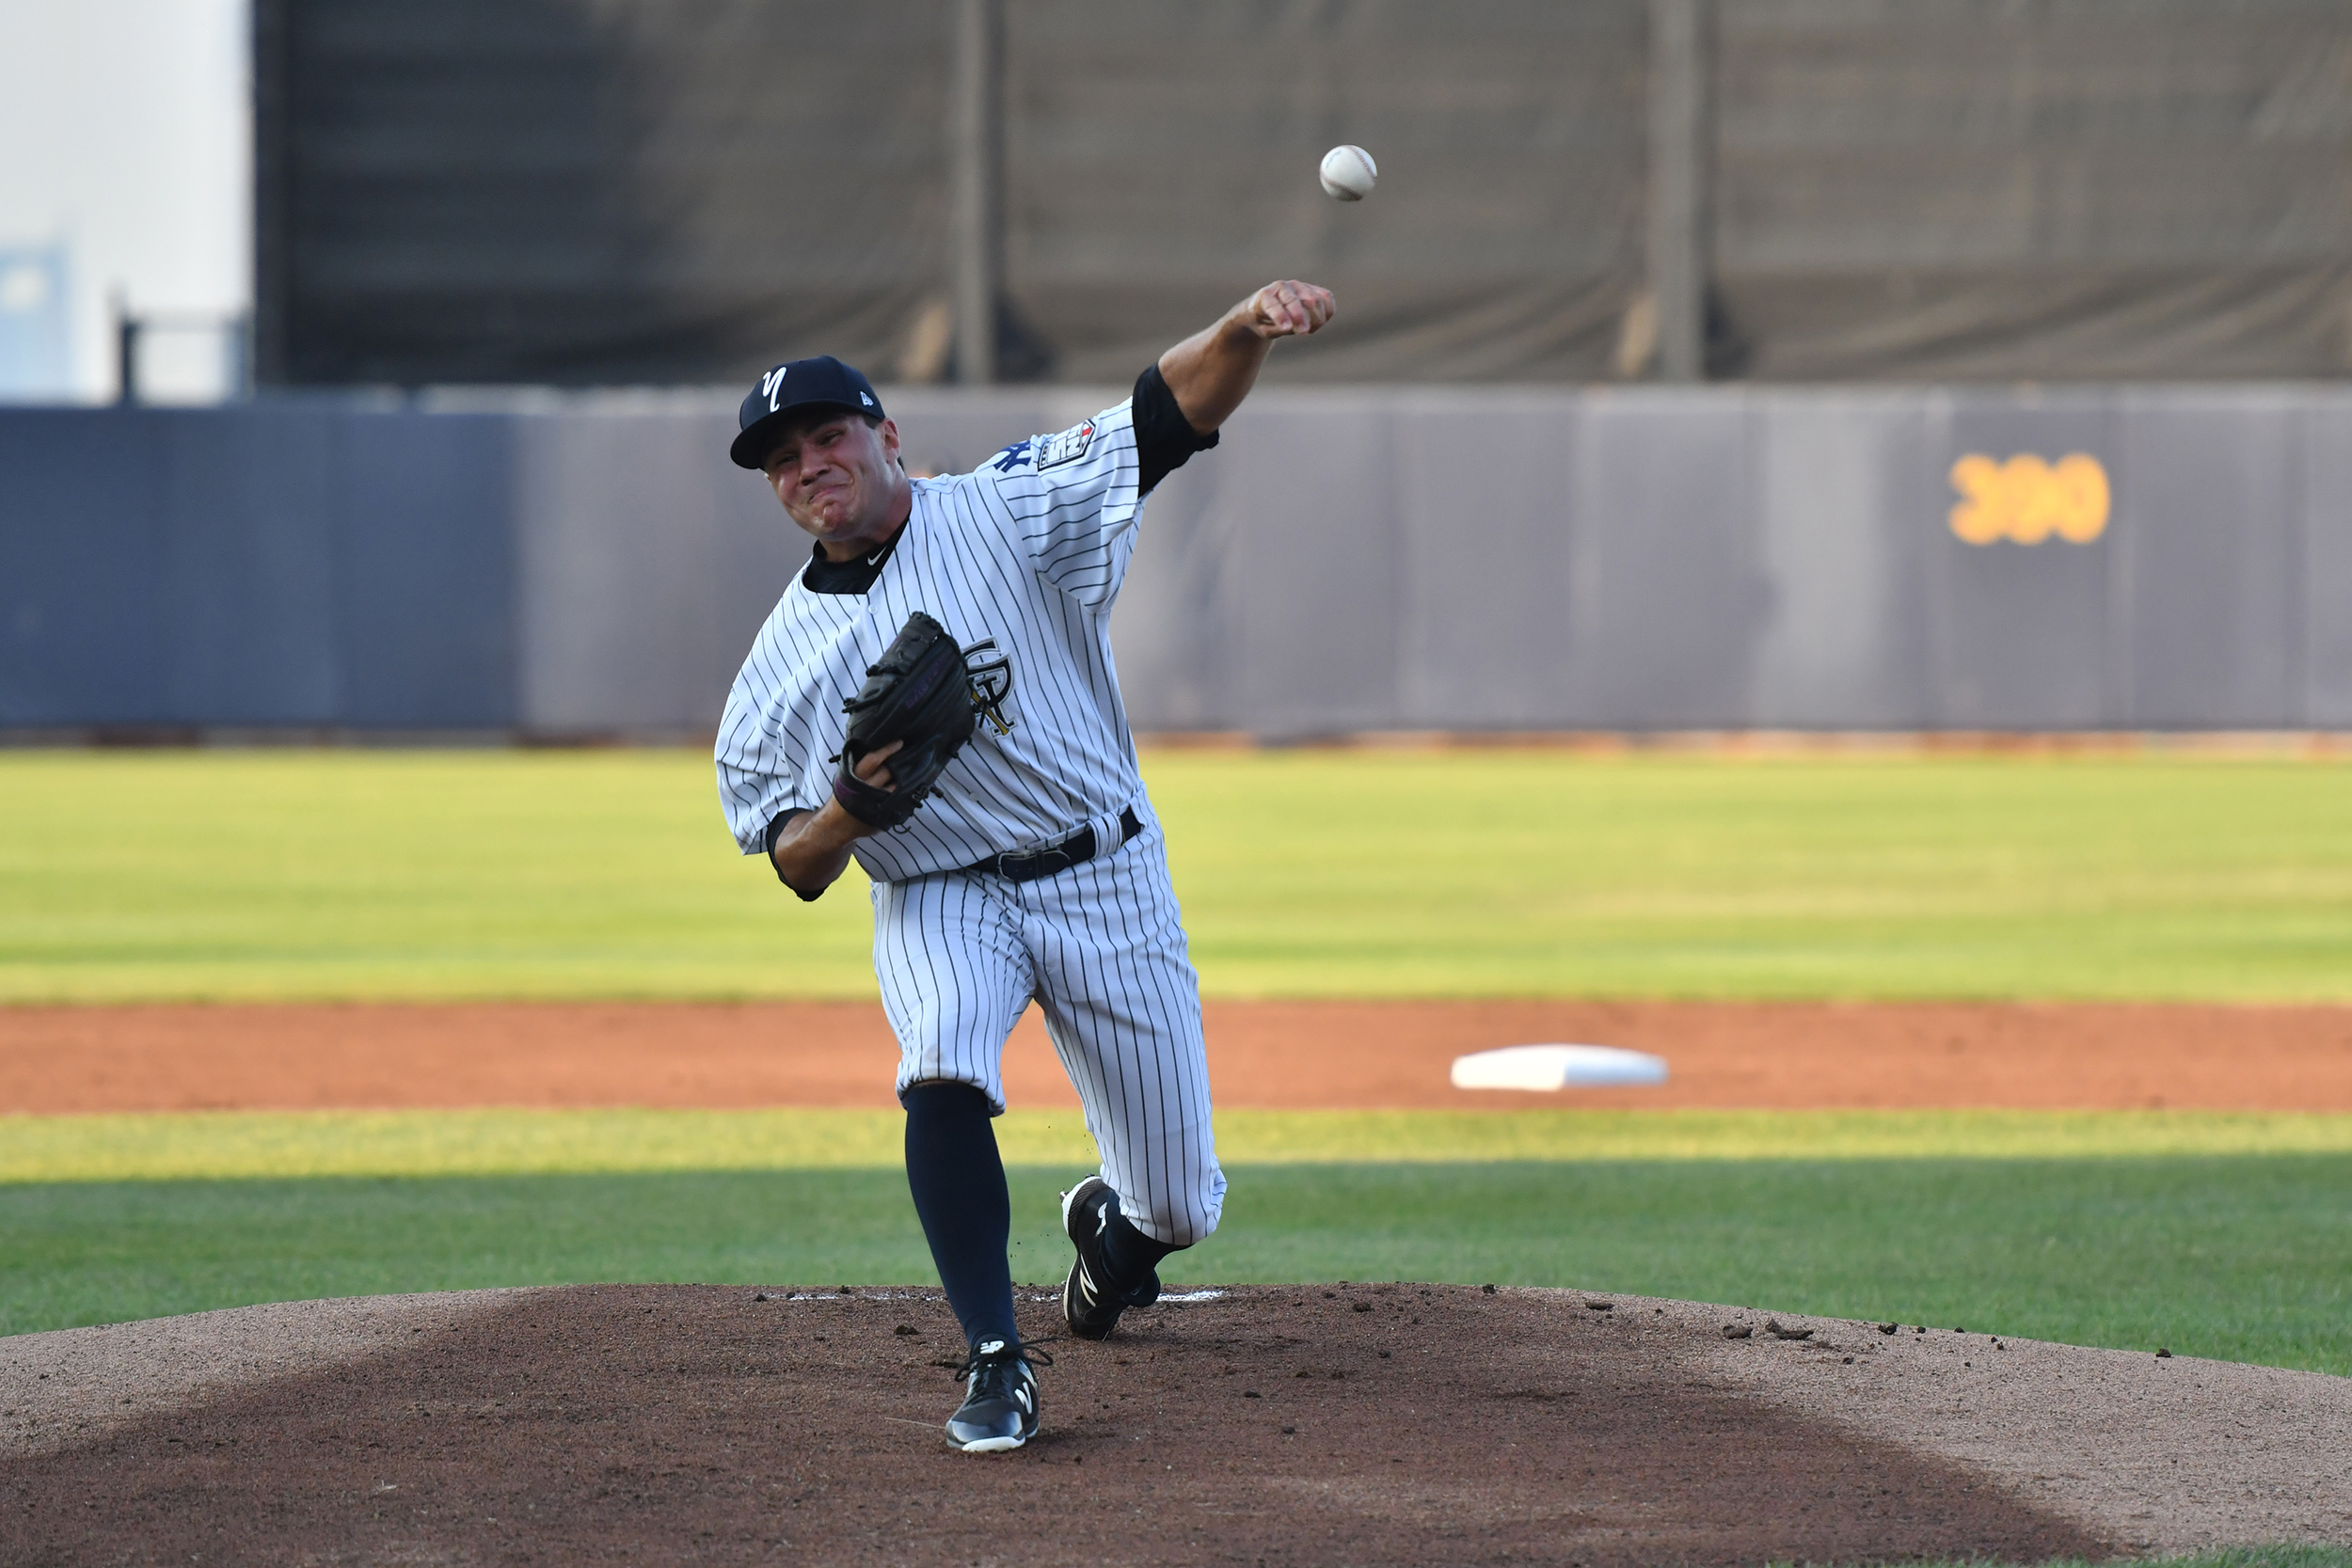 Yankees MiLB Preview: Wednesday 7/17, 2019